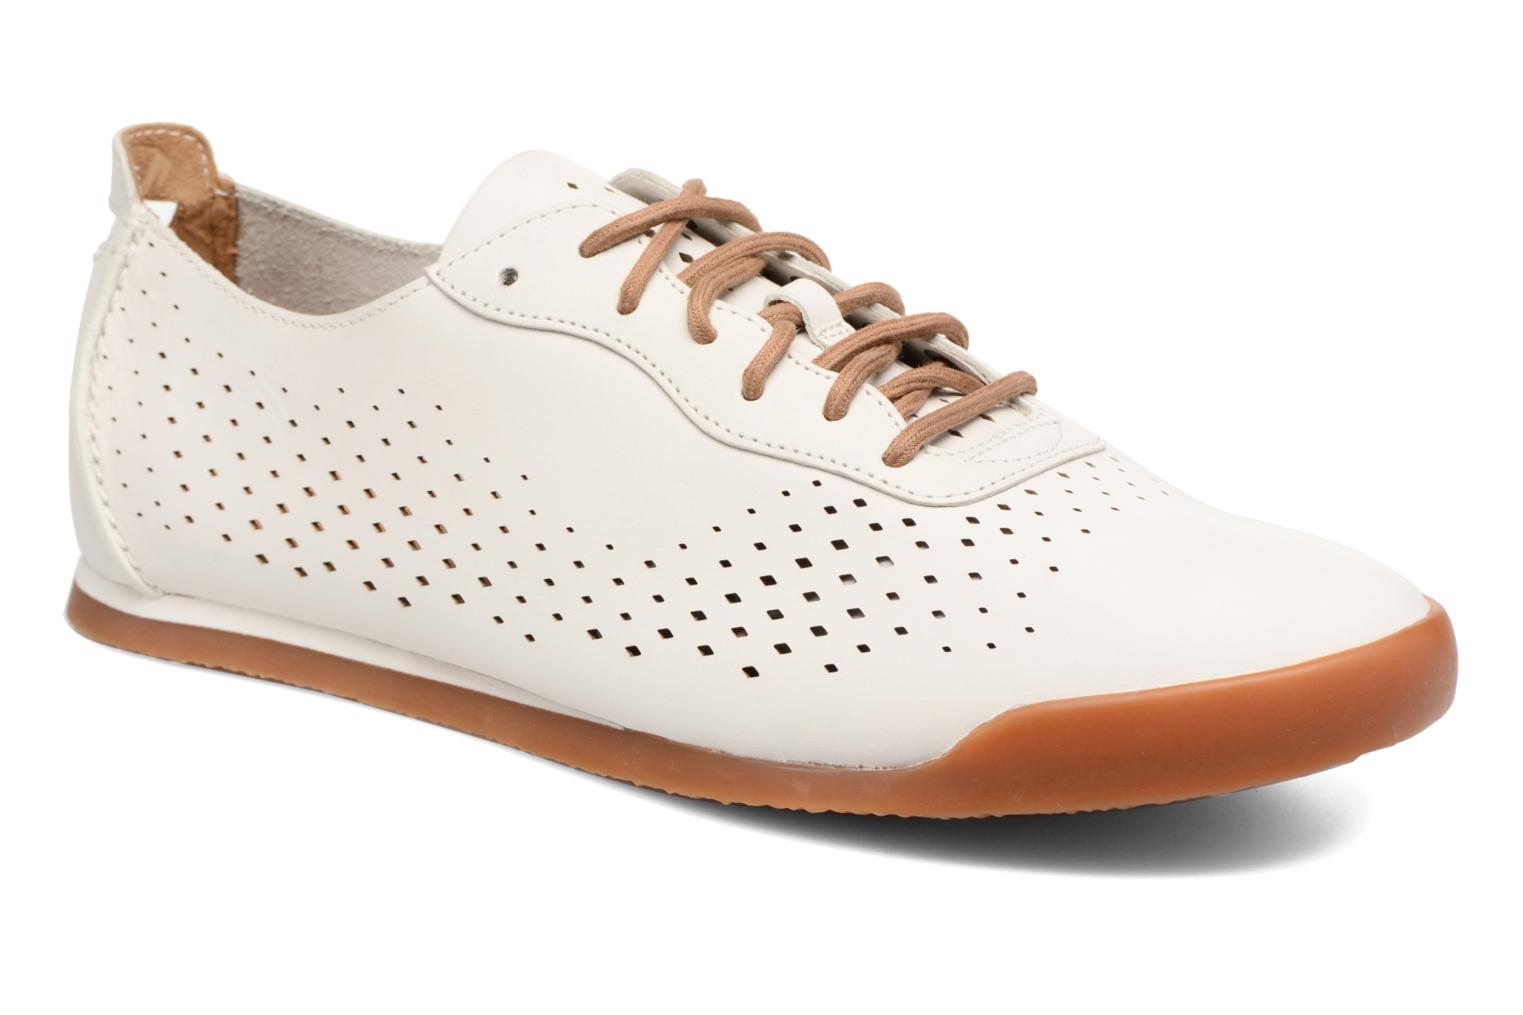 Siddal Run White leather